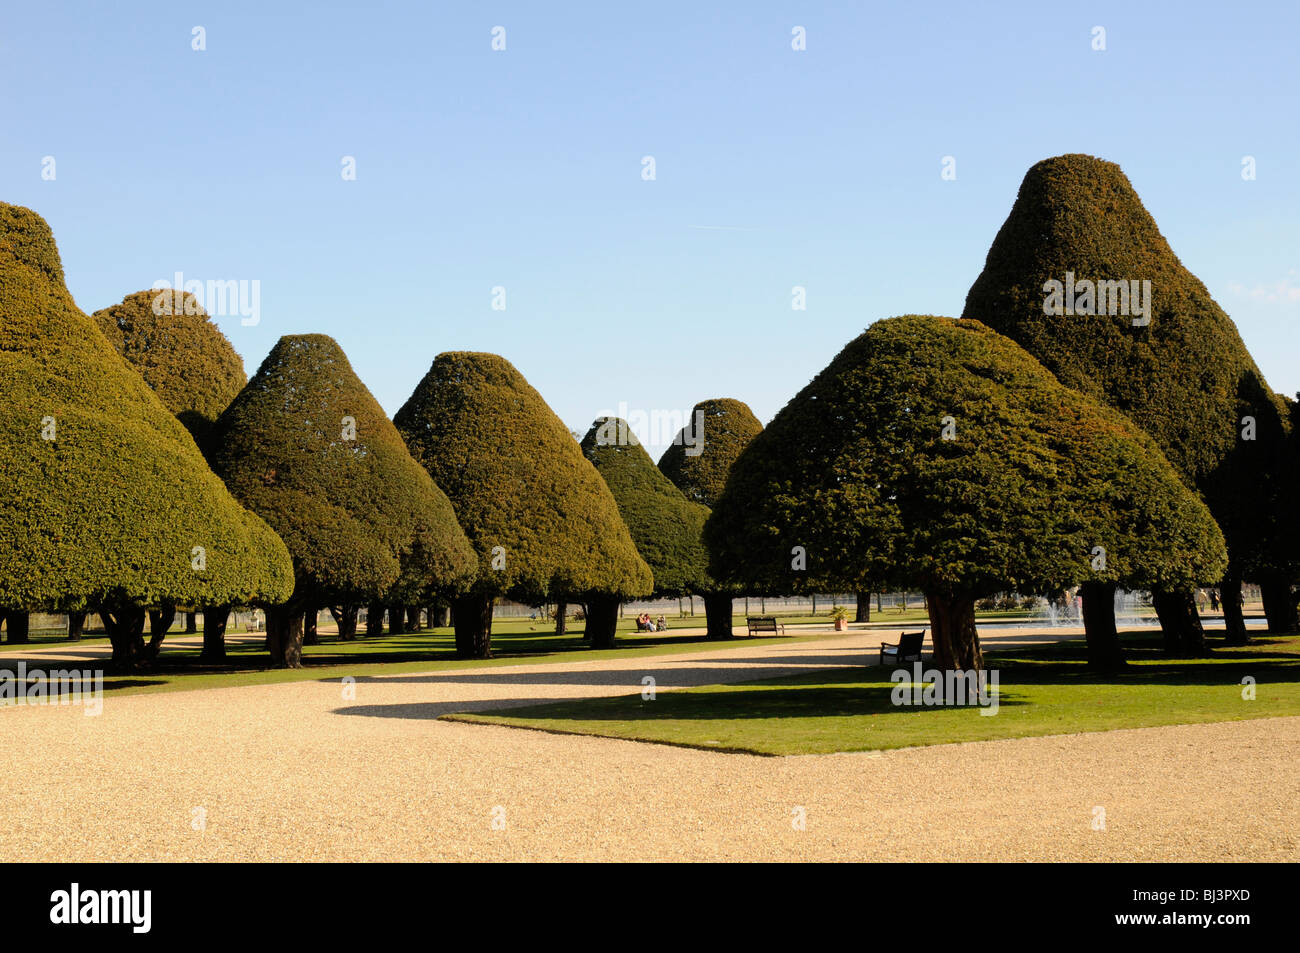 Yew trees in the Great Fountain Garden at Hampton Court, London, UK Stock Photo